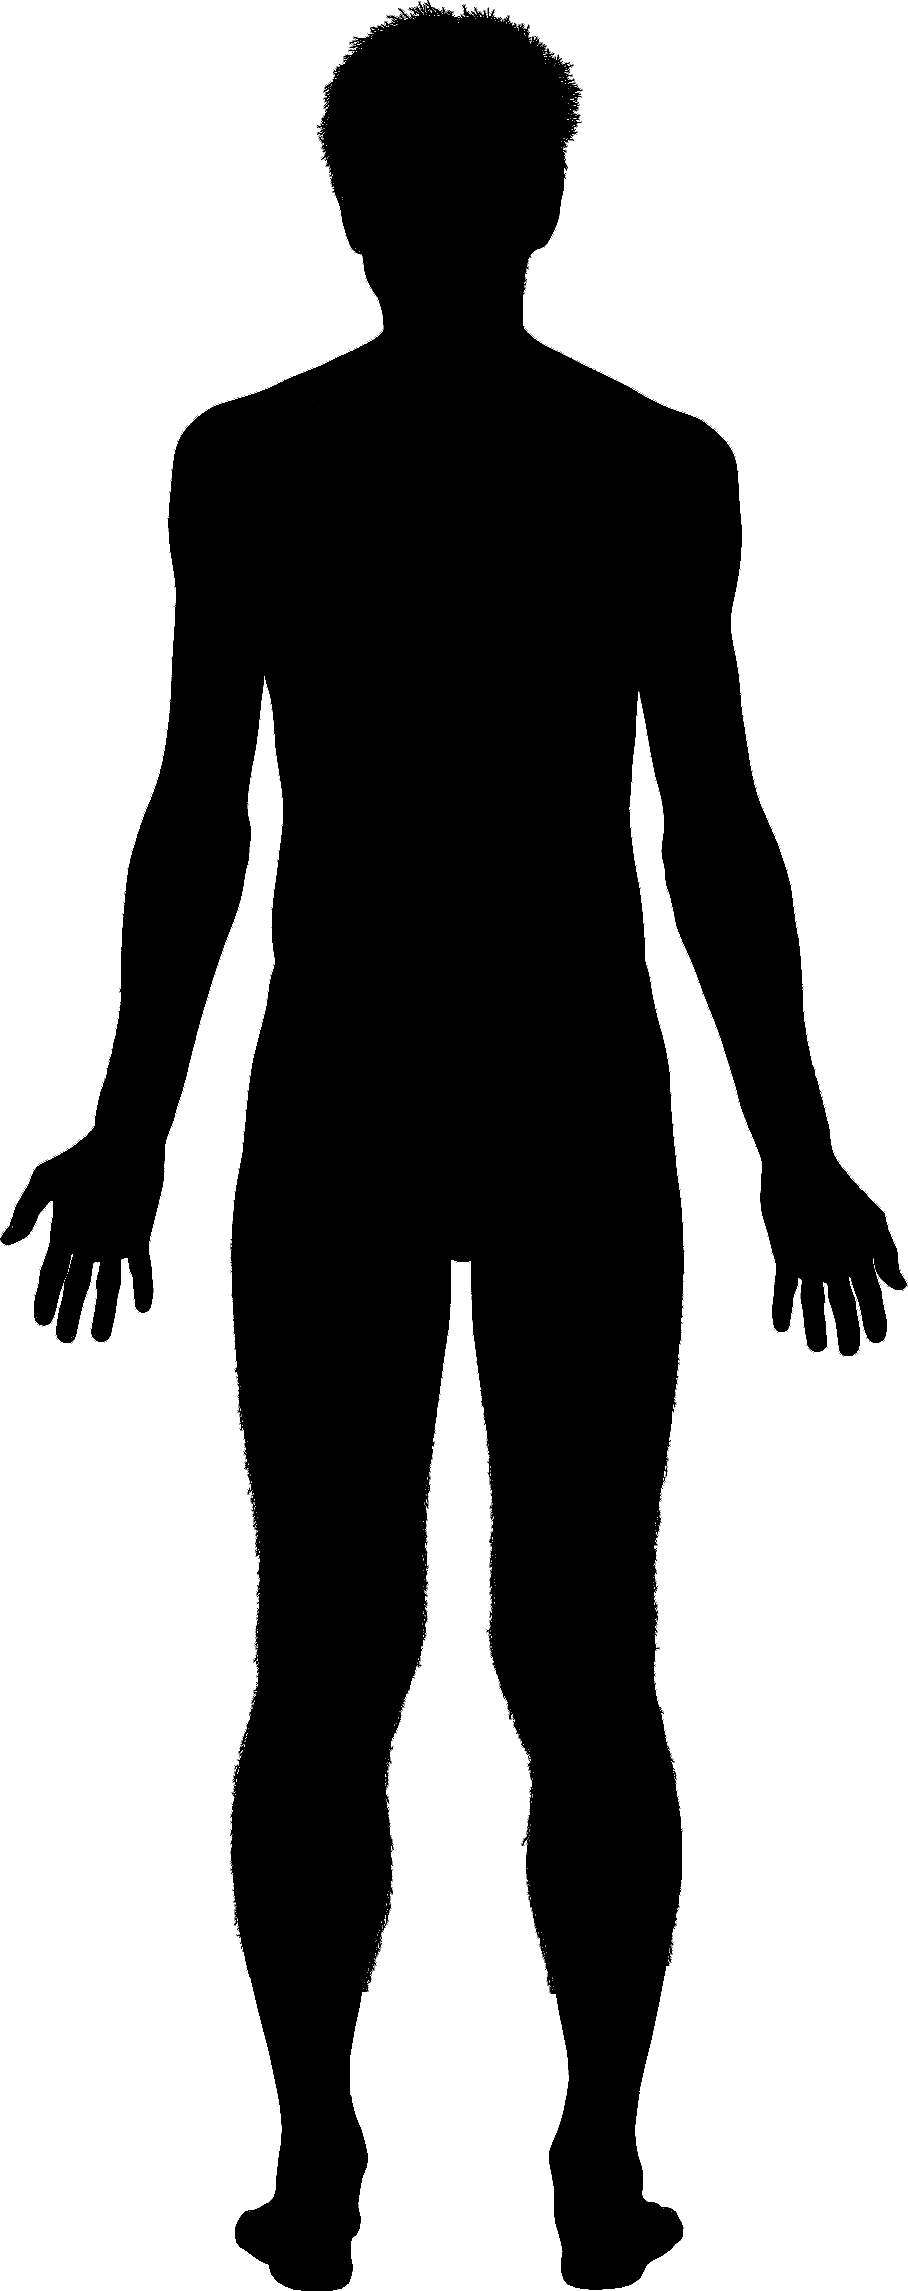 908x2291 Medical Silhouette Cliparts